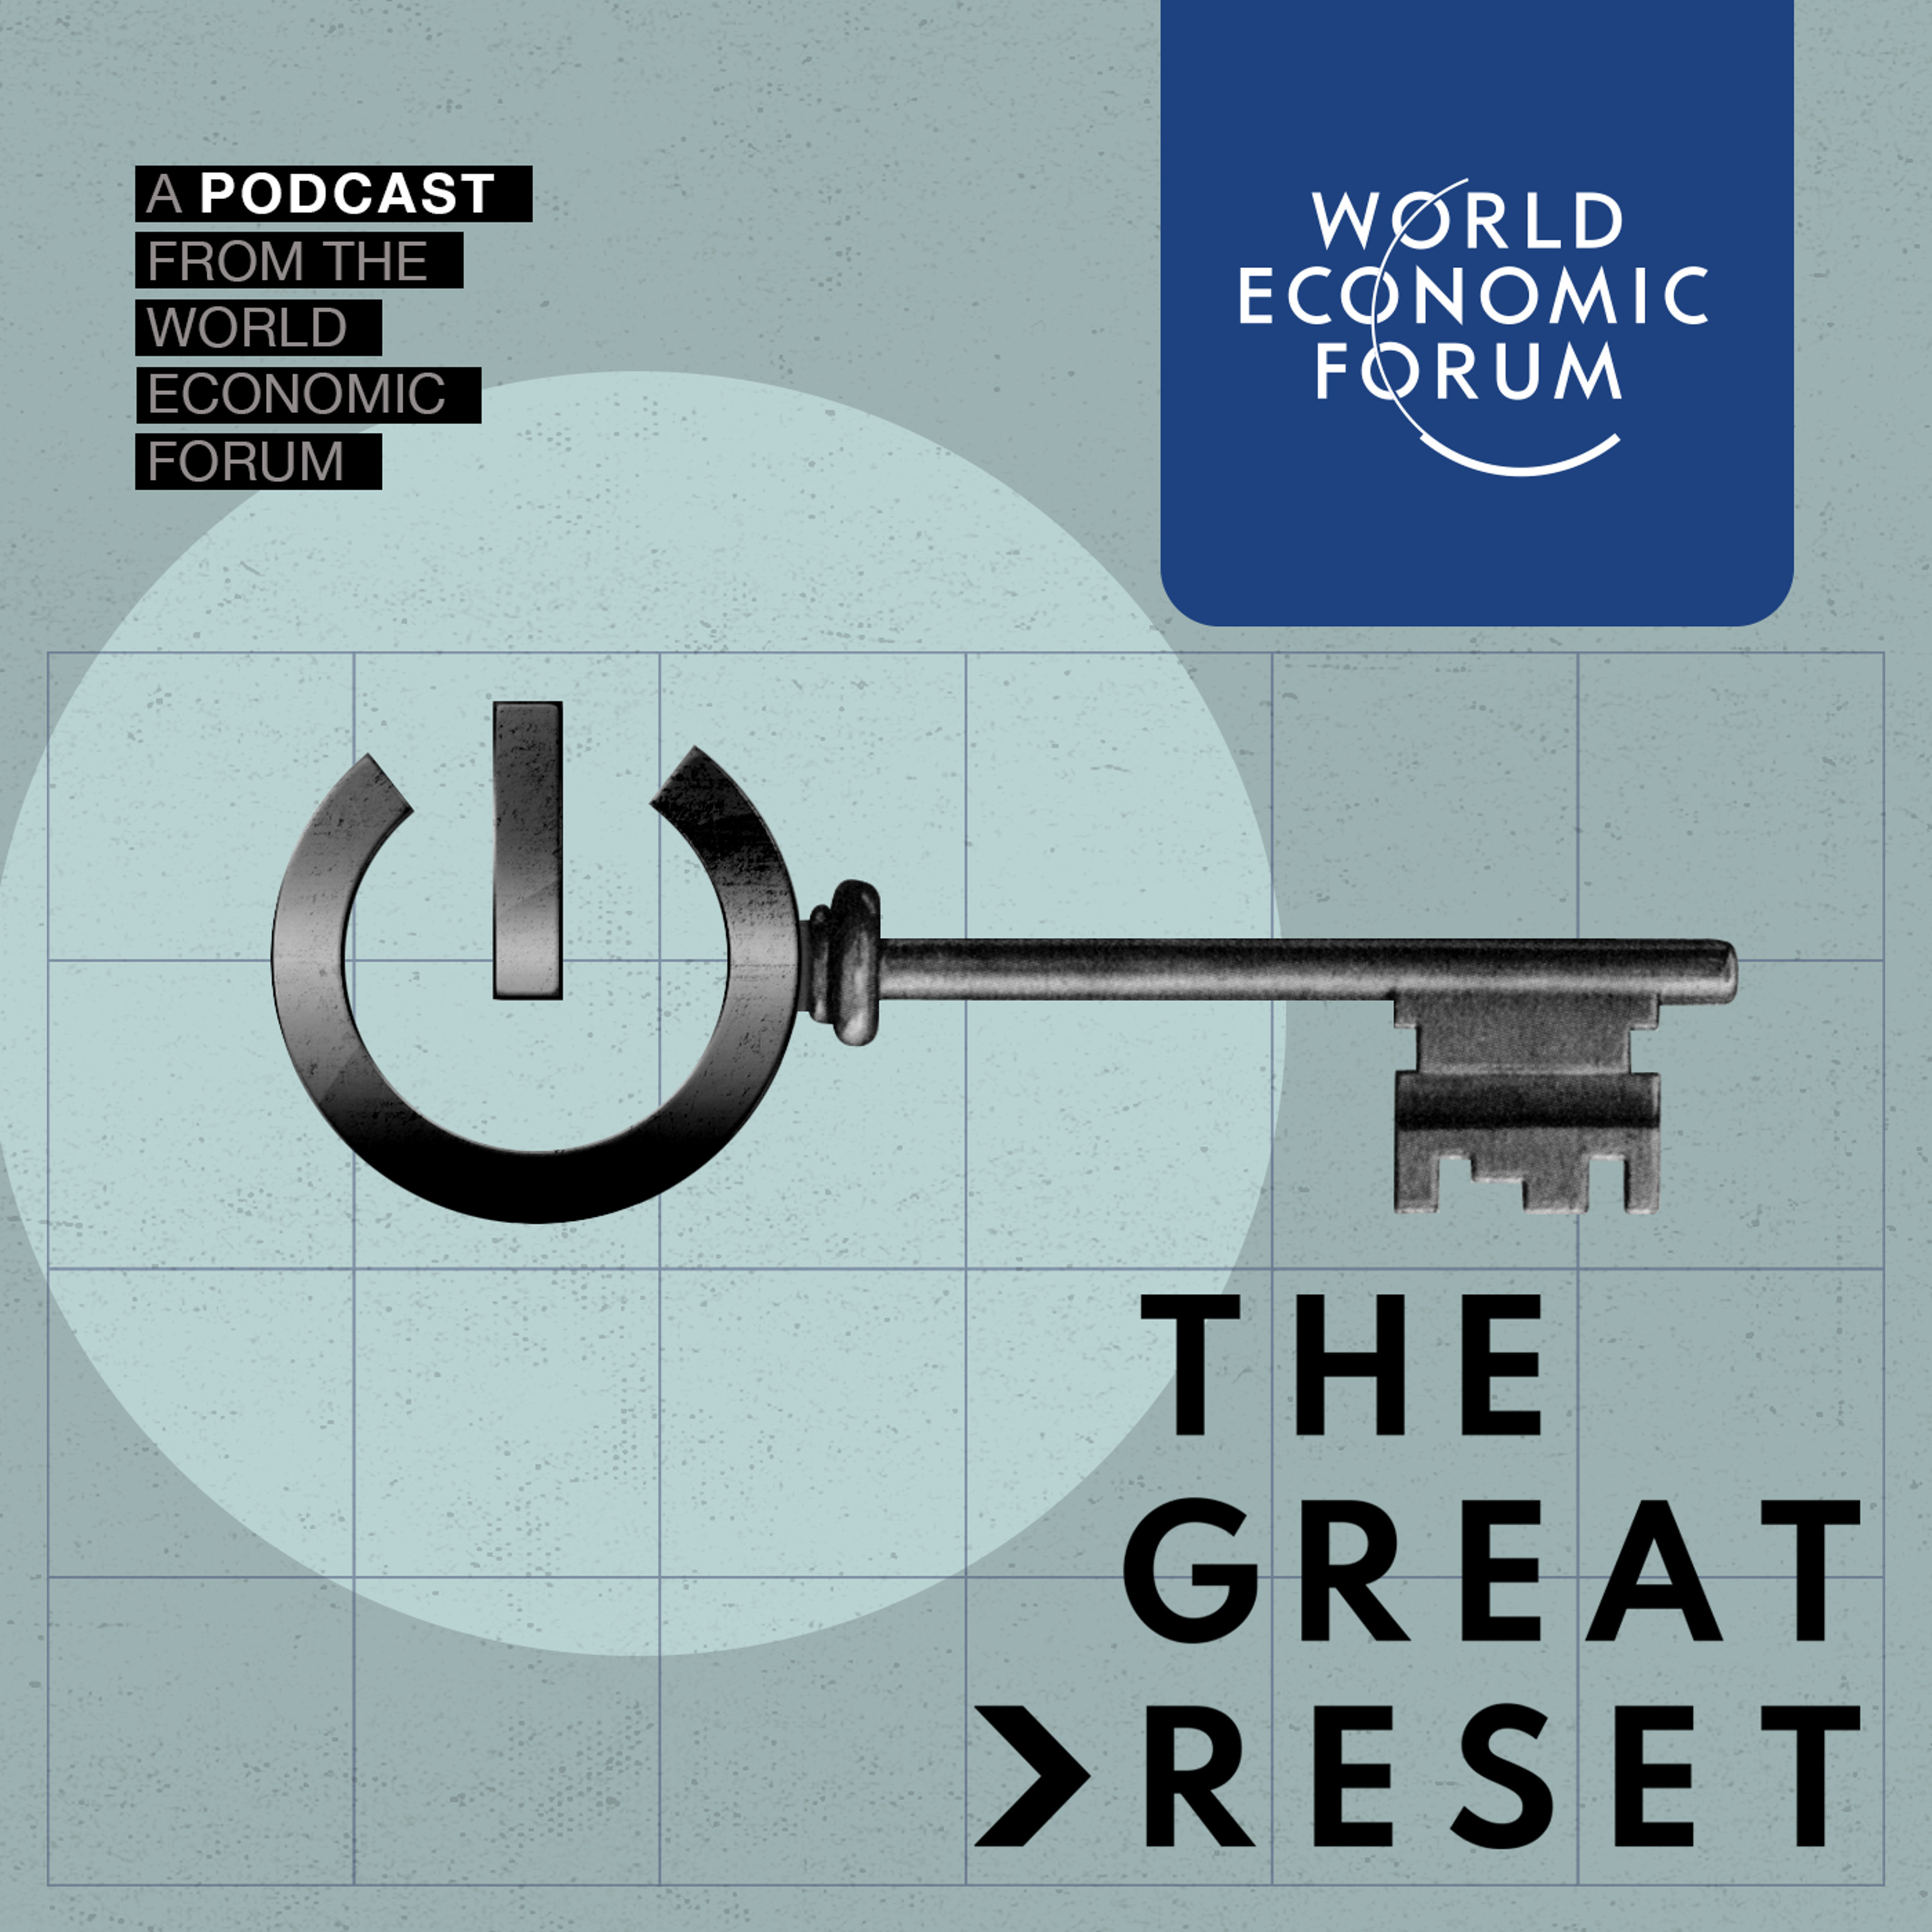 The Great Reset: Restoring the Health of People and Planet